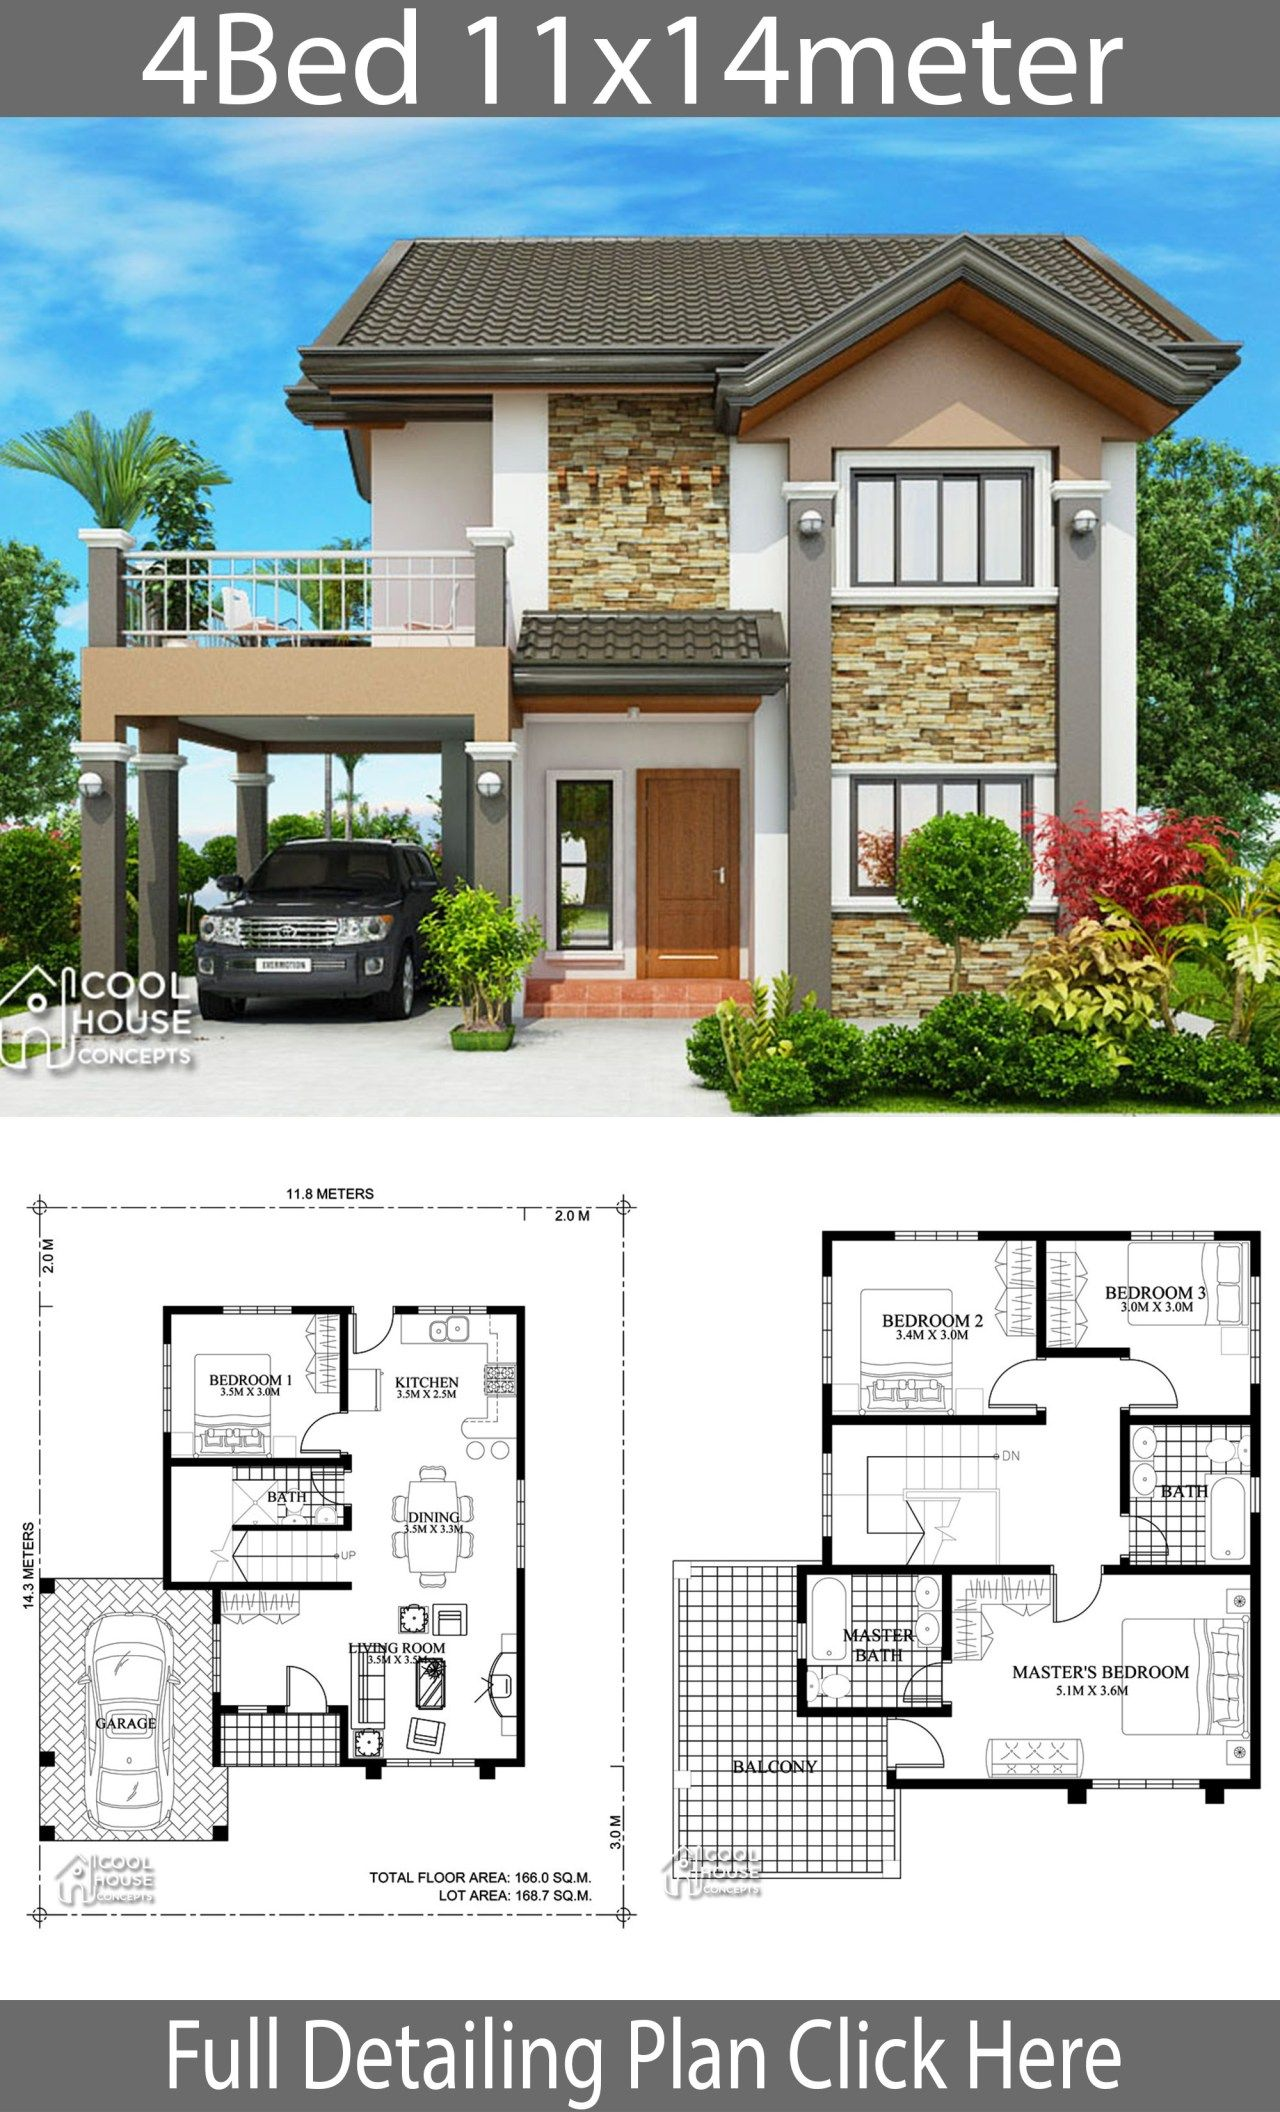 Home design plan 11x14m with 4 bedrooms | Two story house ...